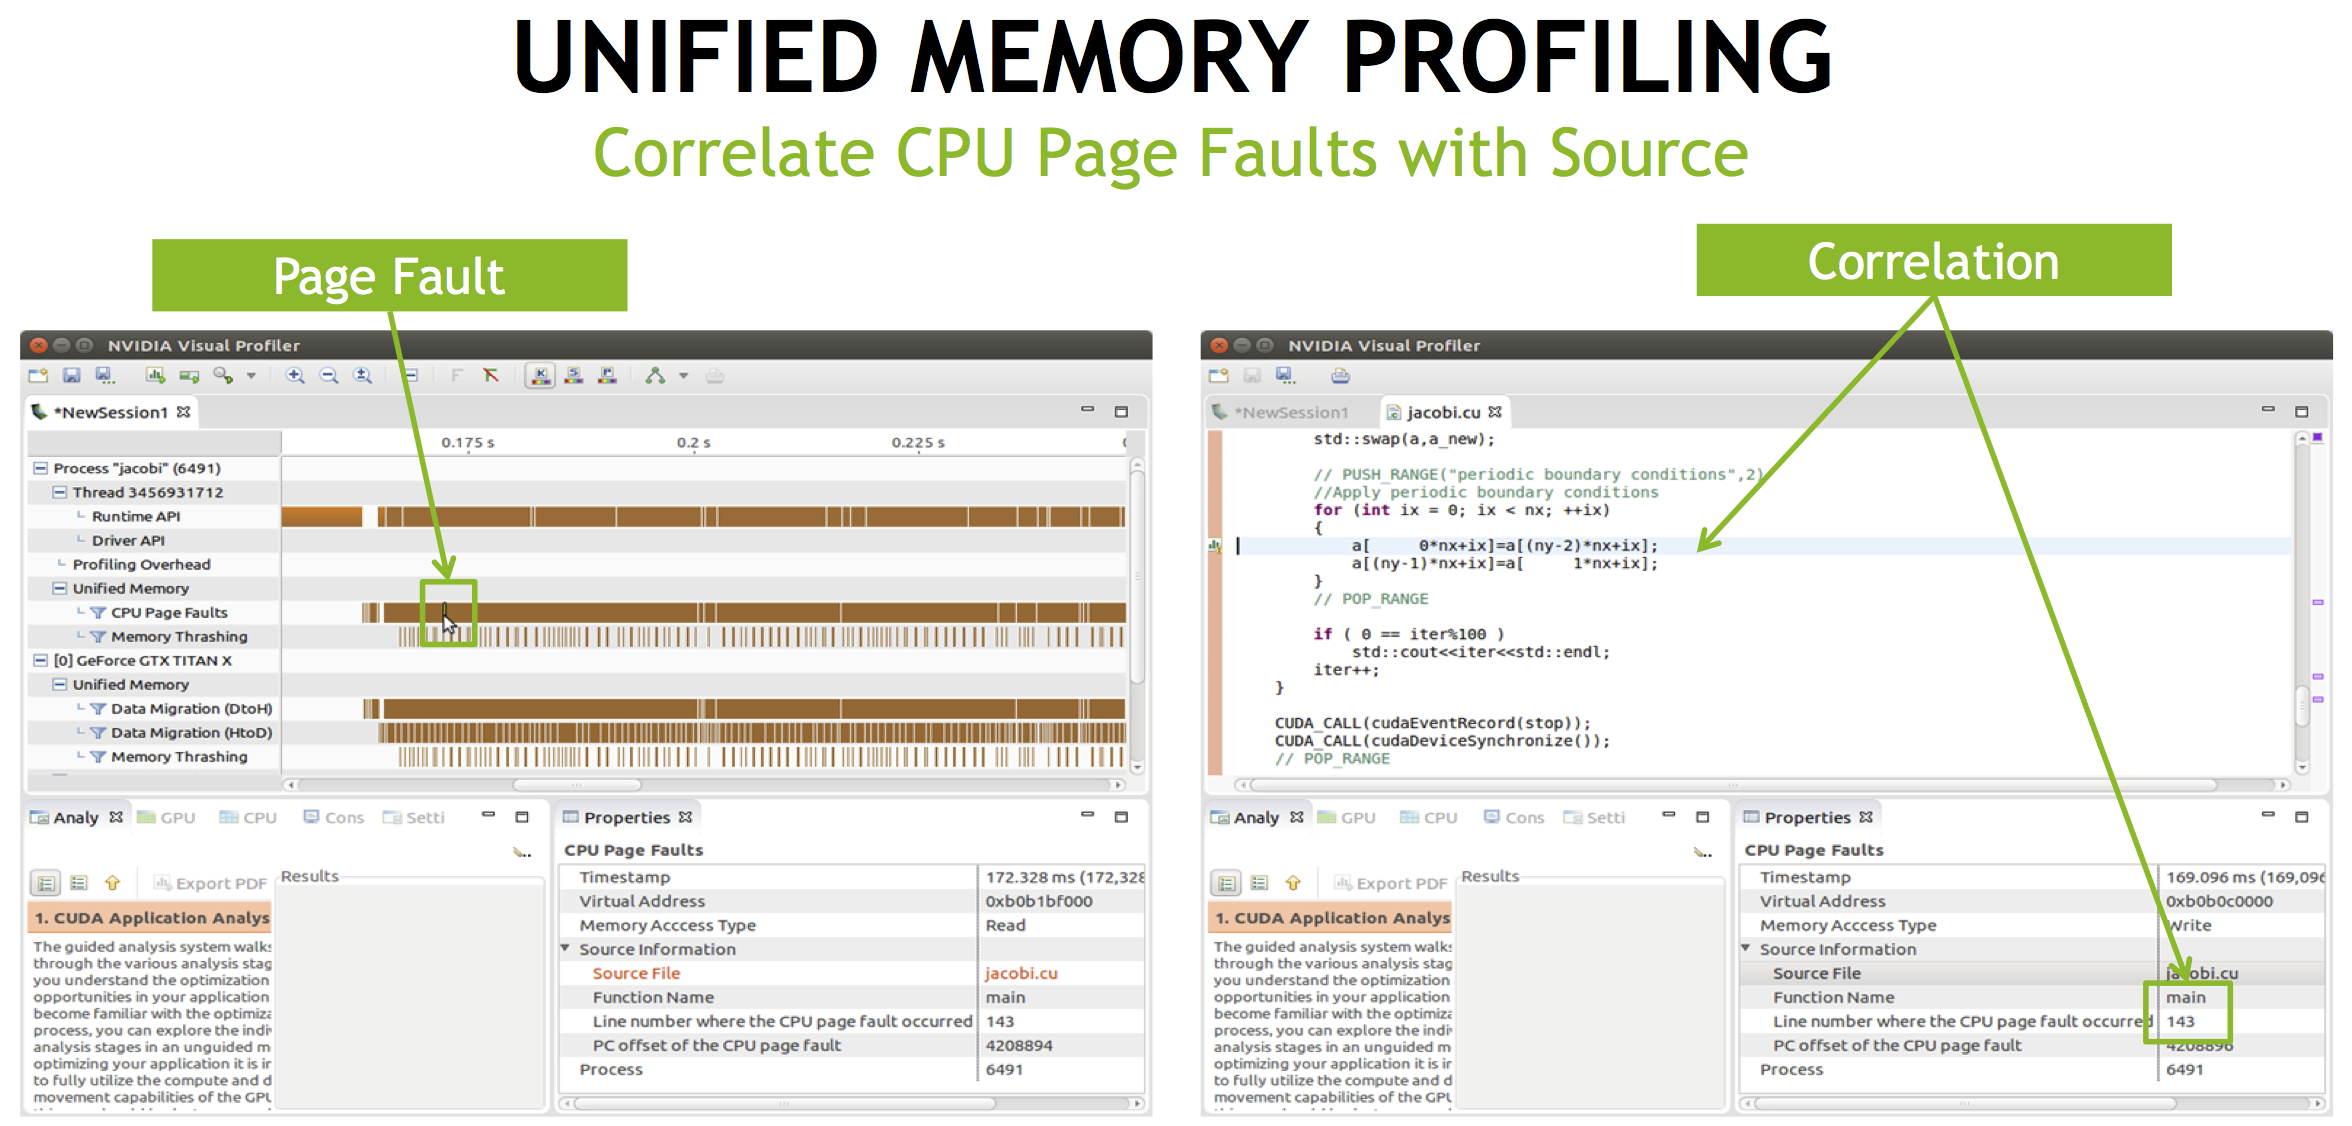 Figure 5: The NVIDIA Visual Profiler can now show you the exact lines where CPU faults occur on Unified Memory pages.